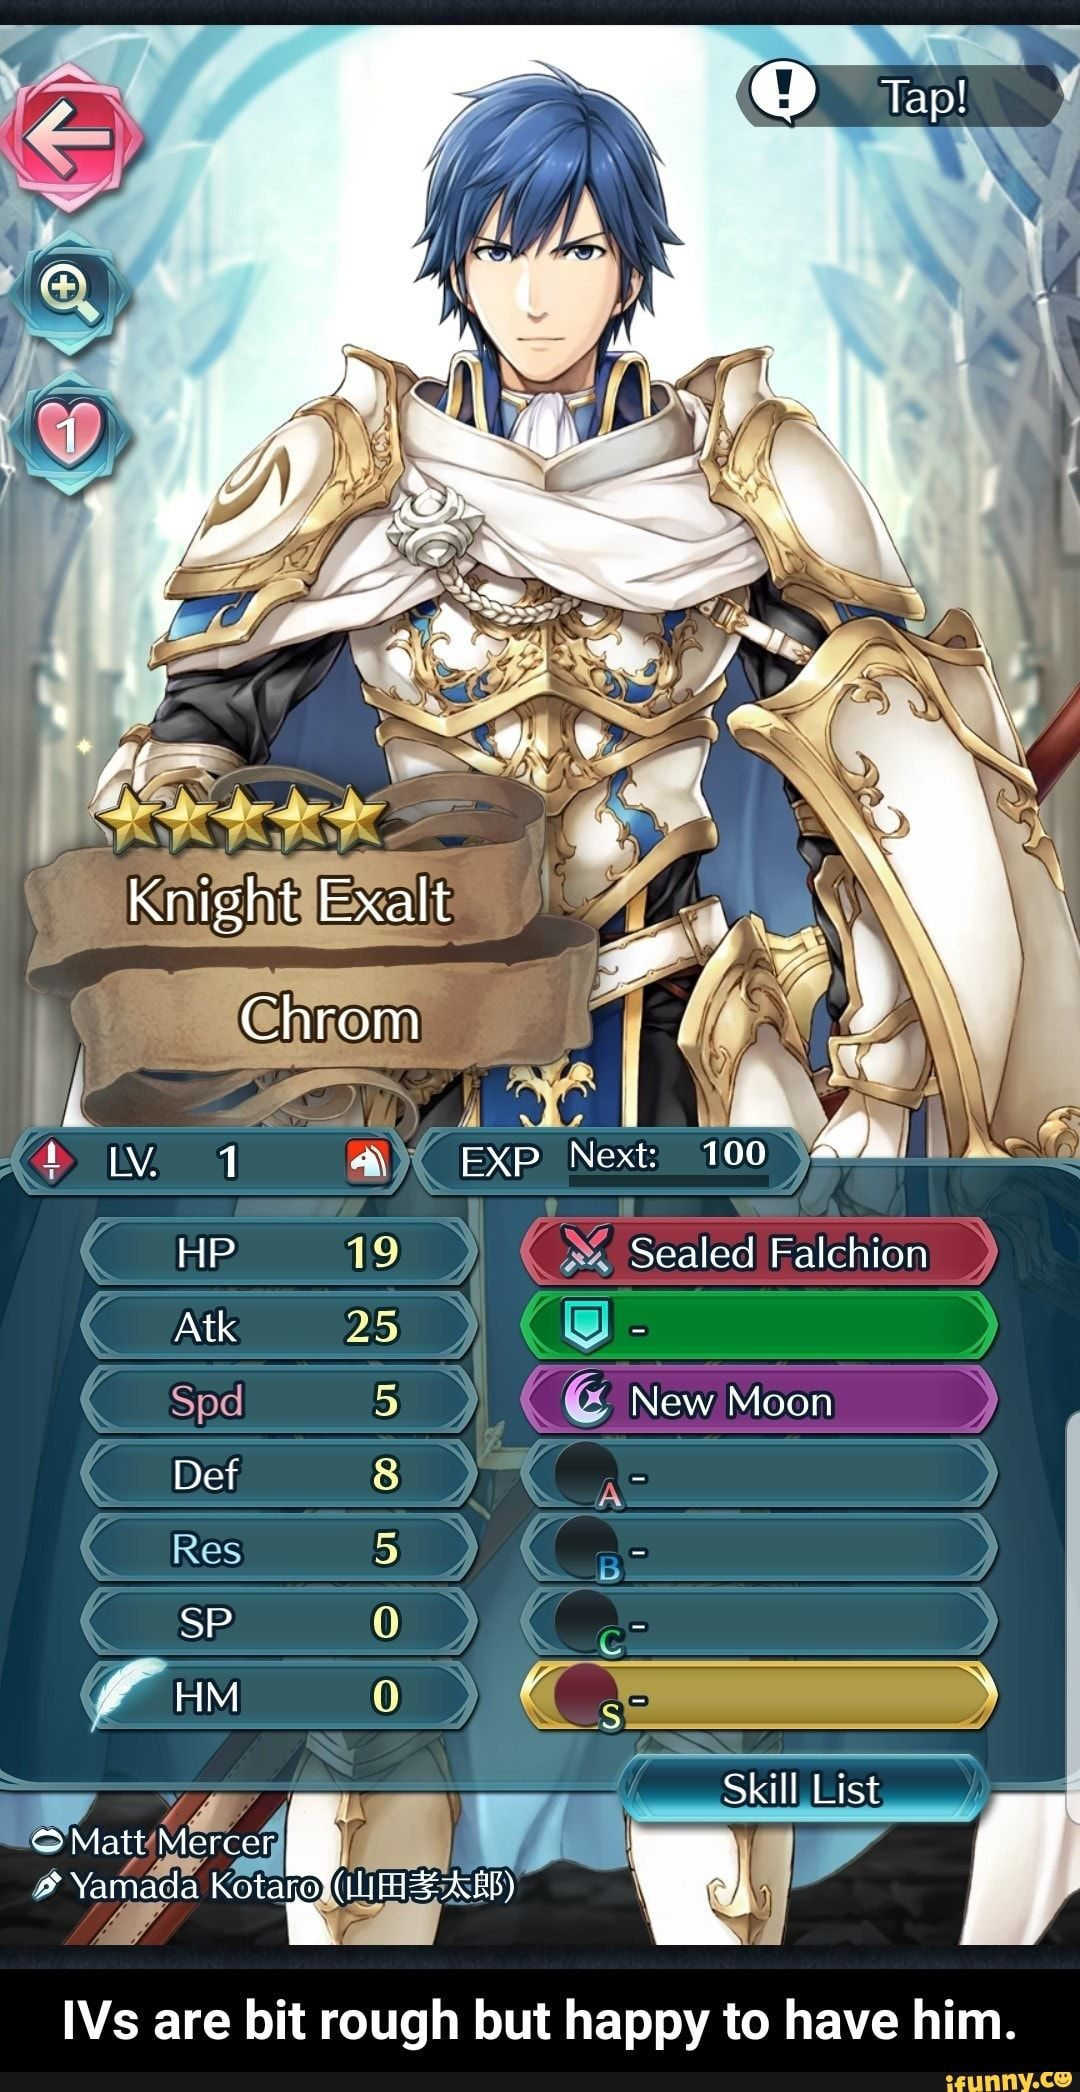 To Have Him G Ivs Are Bit Rough But Happy Ivs Are Bit Rough But Happy To Have Him Ifunny Fire Emblem Heroes Fire Emblem List Of Skills